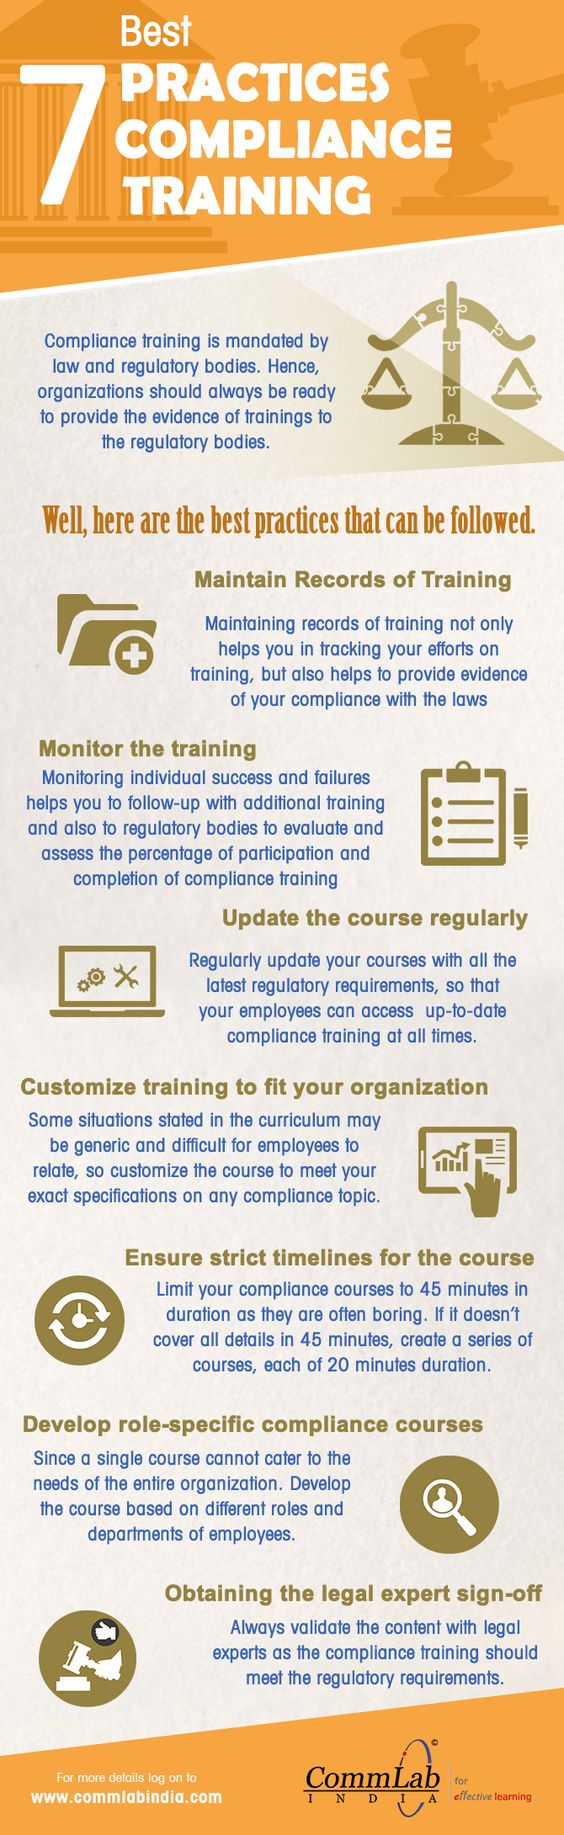 Training design and best practice on pinterest - Qualifications for compliance officer ...